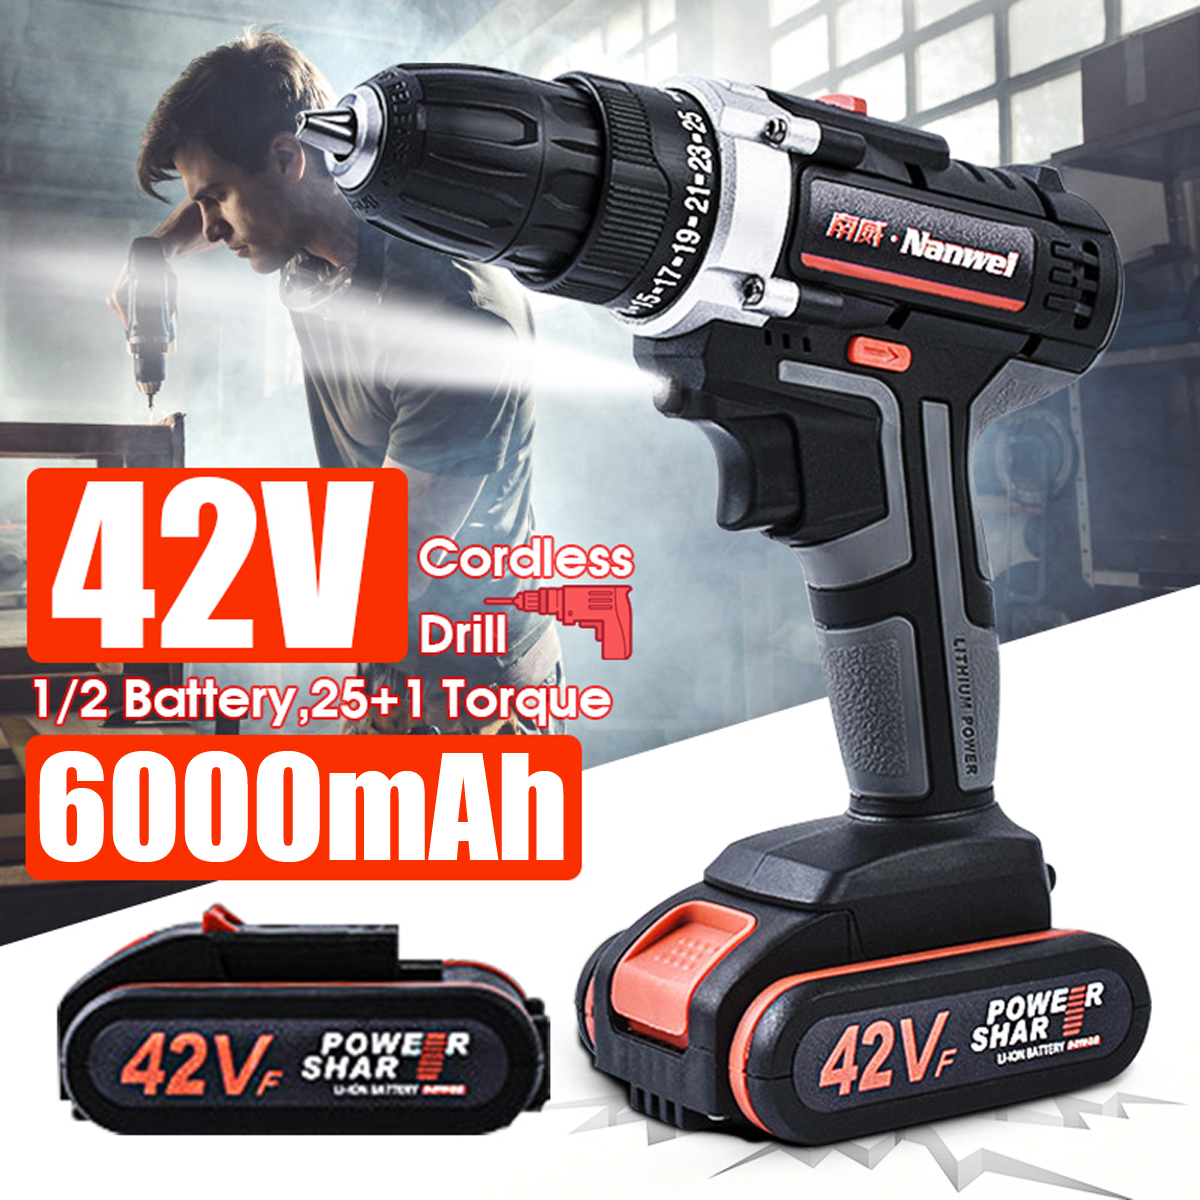 42V 6000mAh Rechargeable Lithium Battery Double Speed Cordless Drill Electric Drill Wrench Powerful Driver Household Car Tools42V 6000mAh Rechargeable Lithium Battery Double Speed Cordless Drill Electric Drill Wrench Powerful Driver Household Car Tools